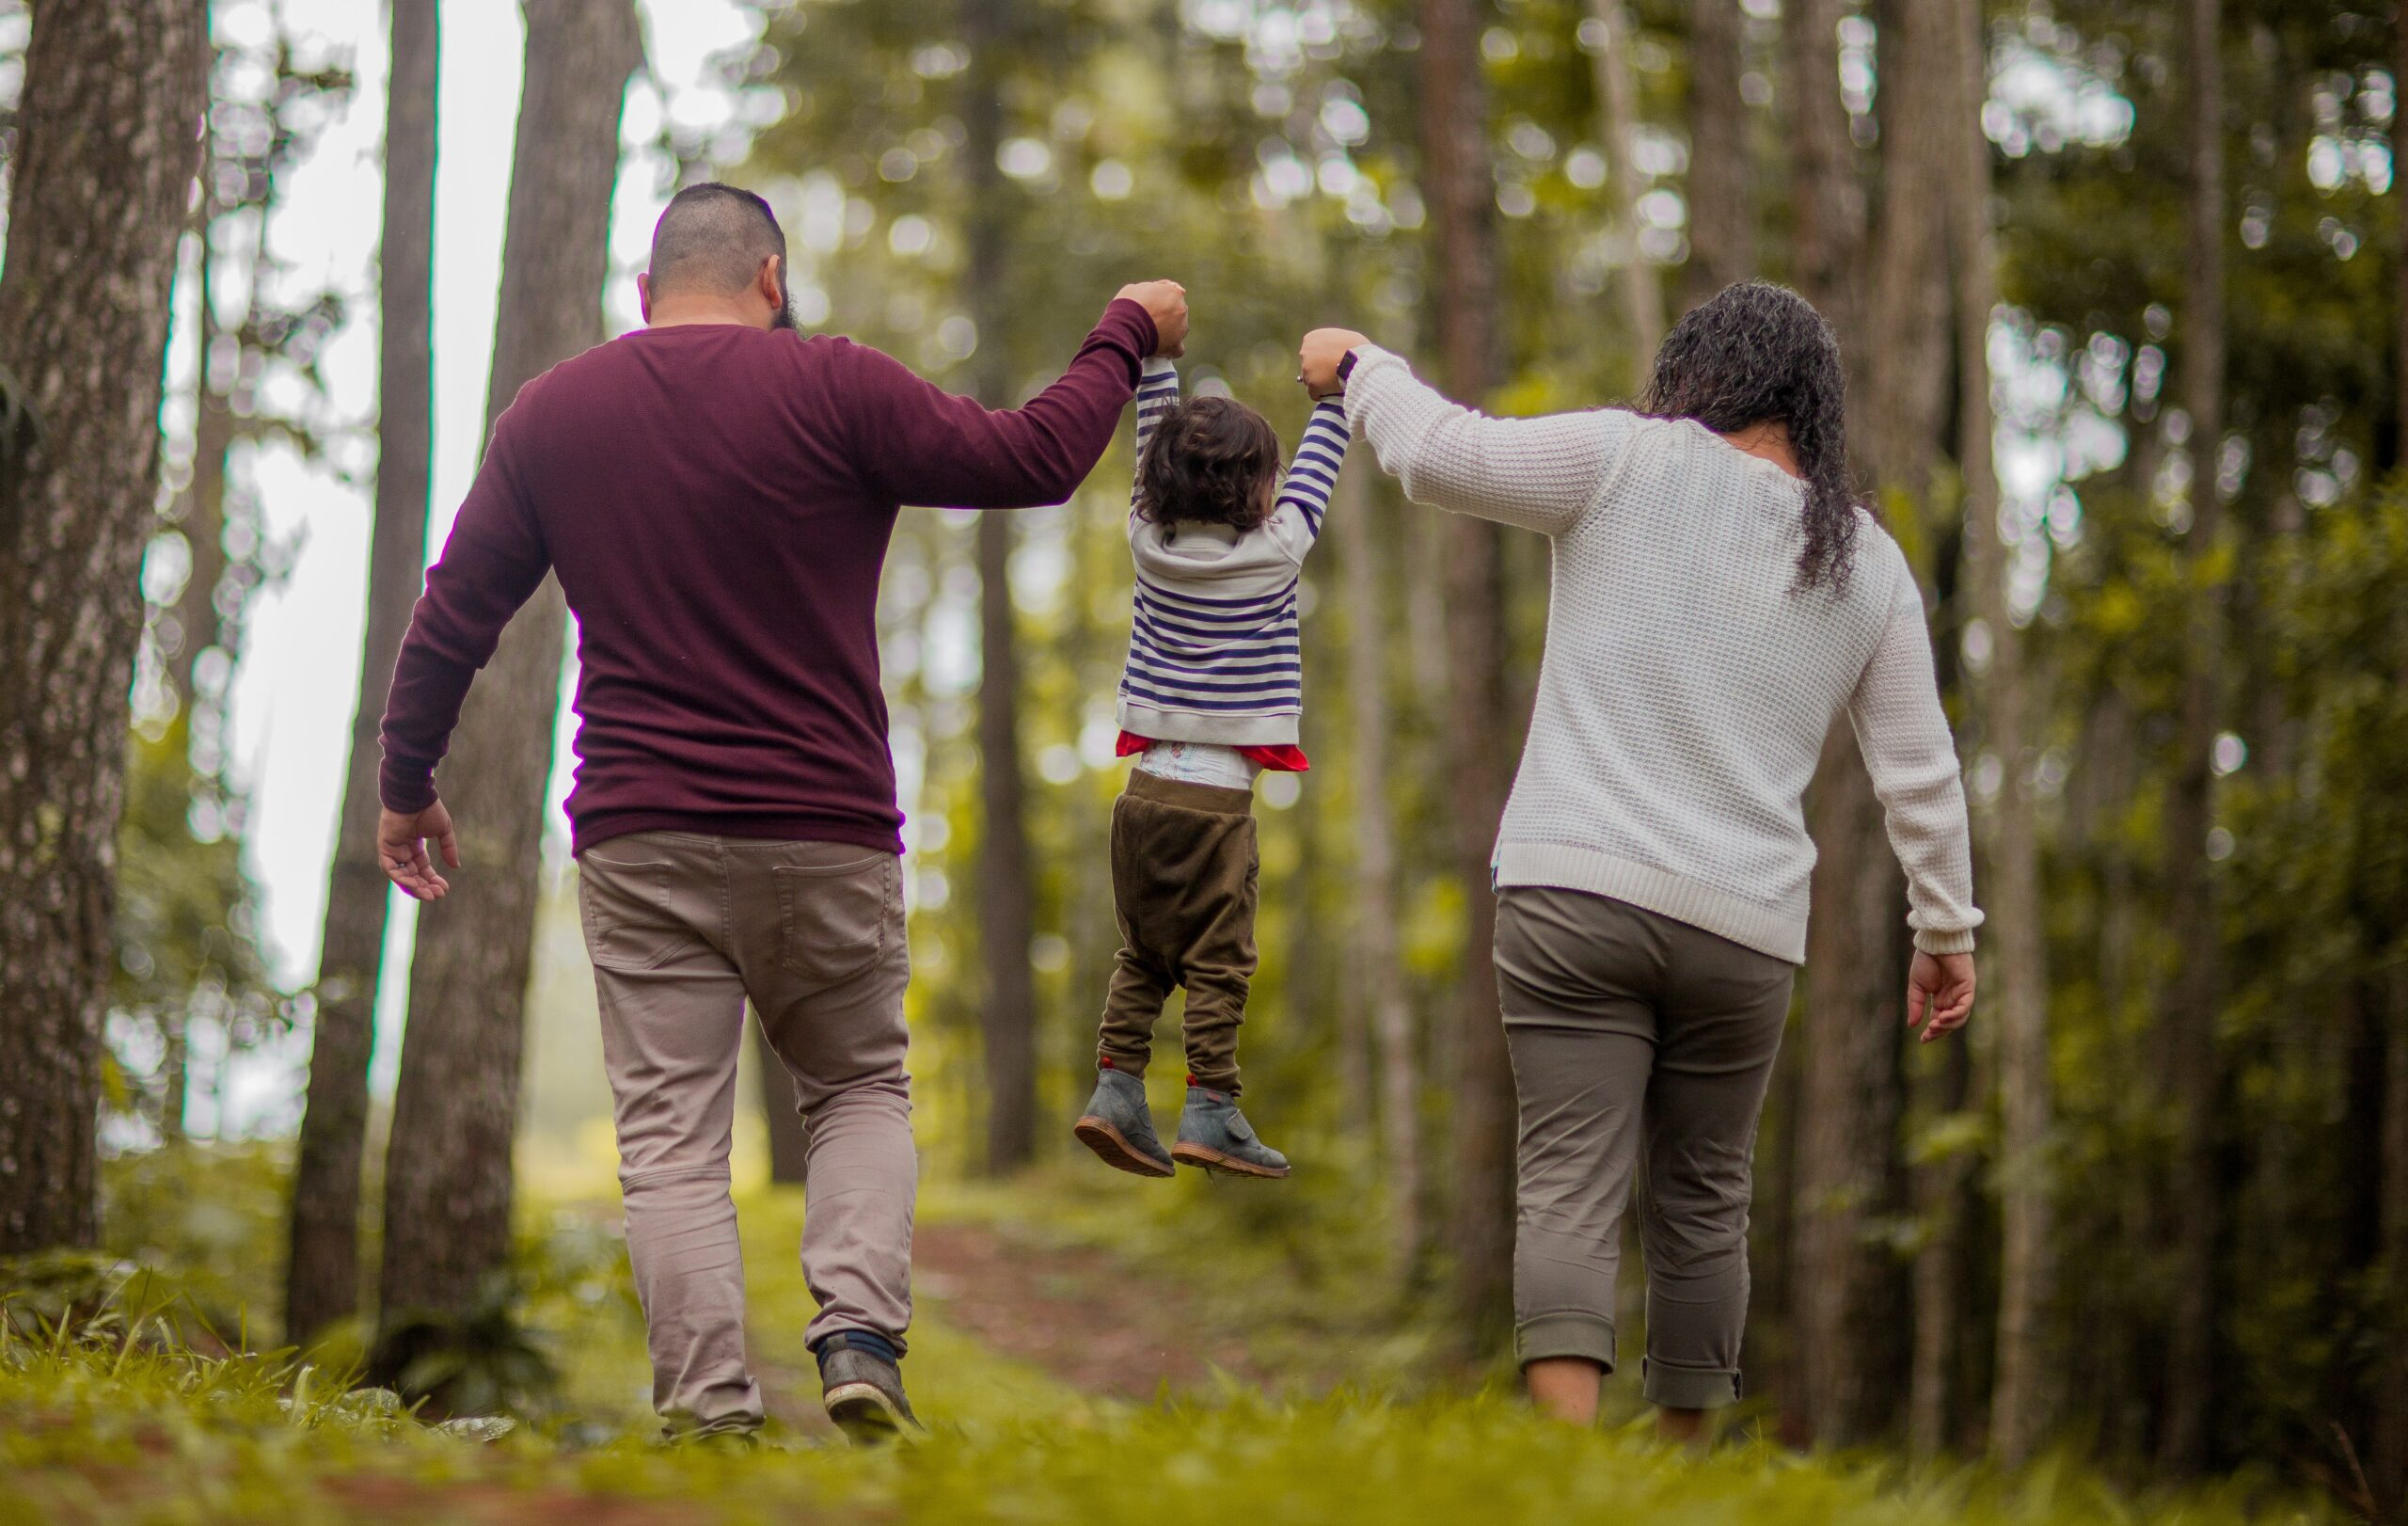 two adults and a young child walking in a forest while holding hands